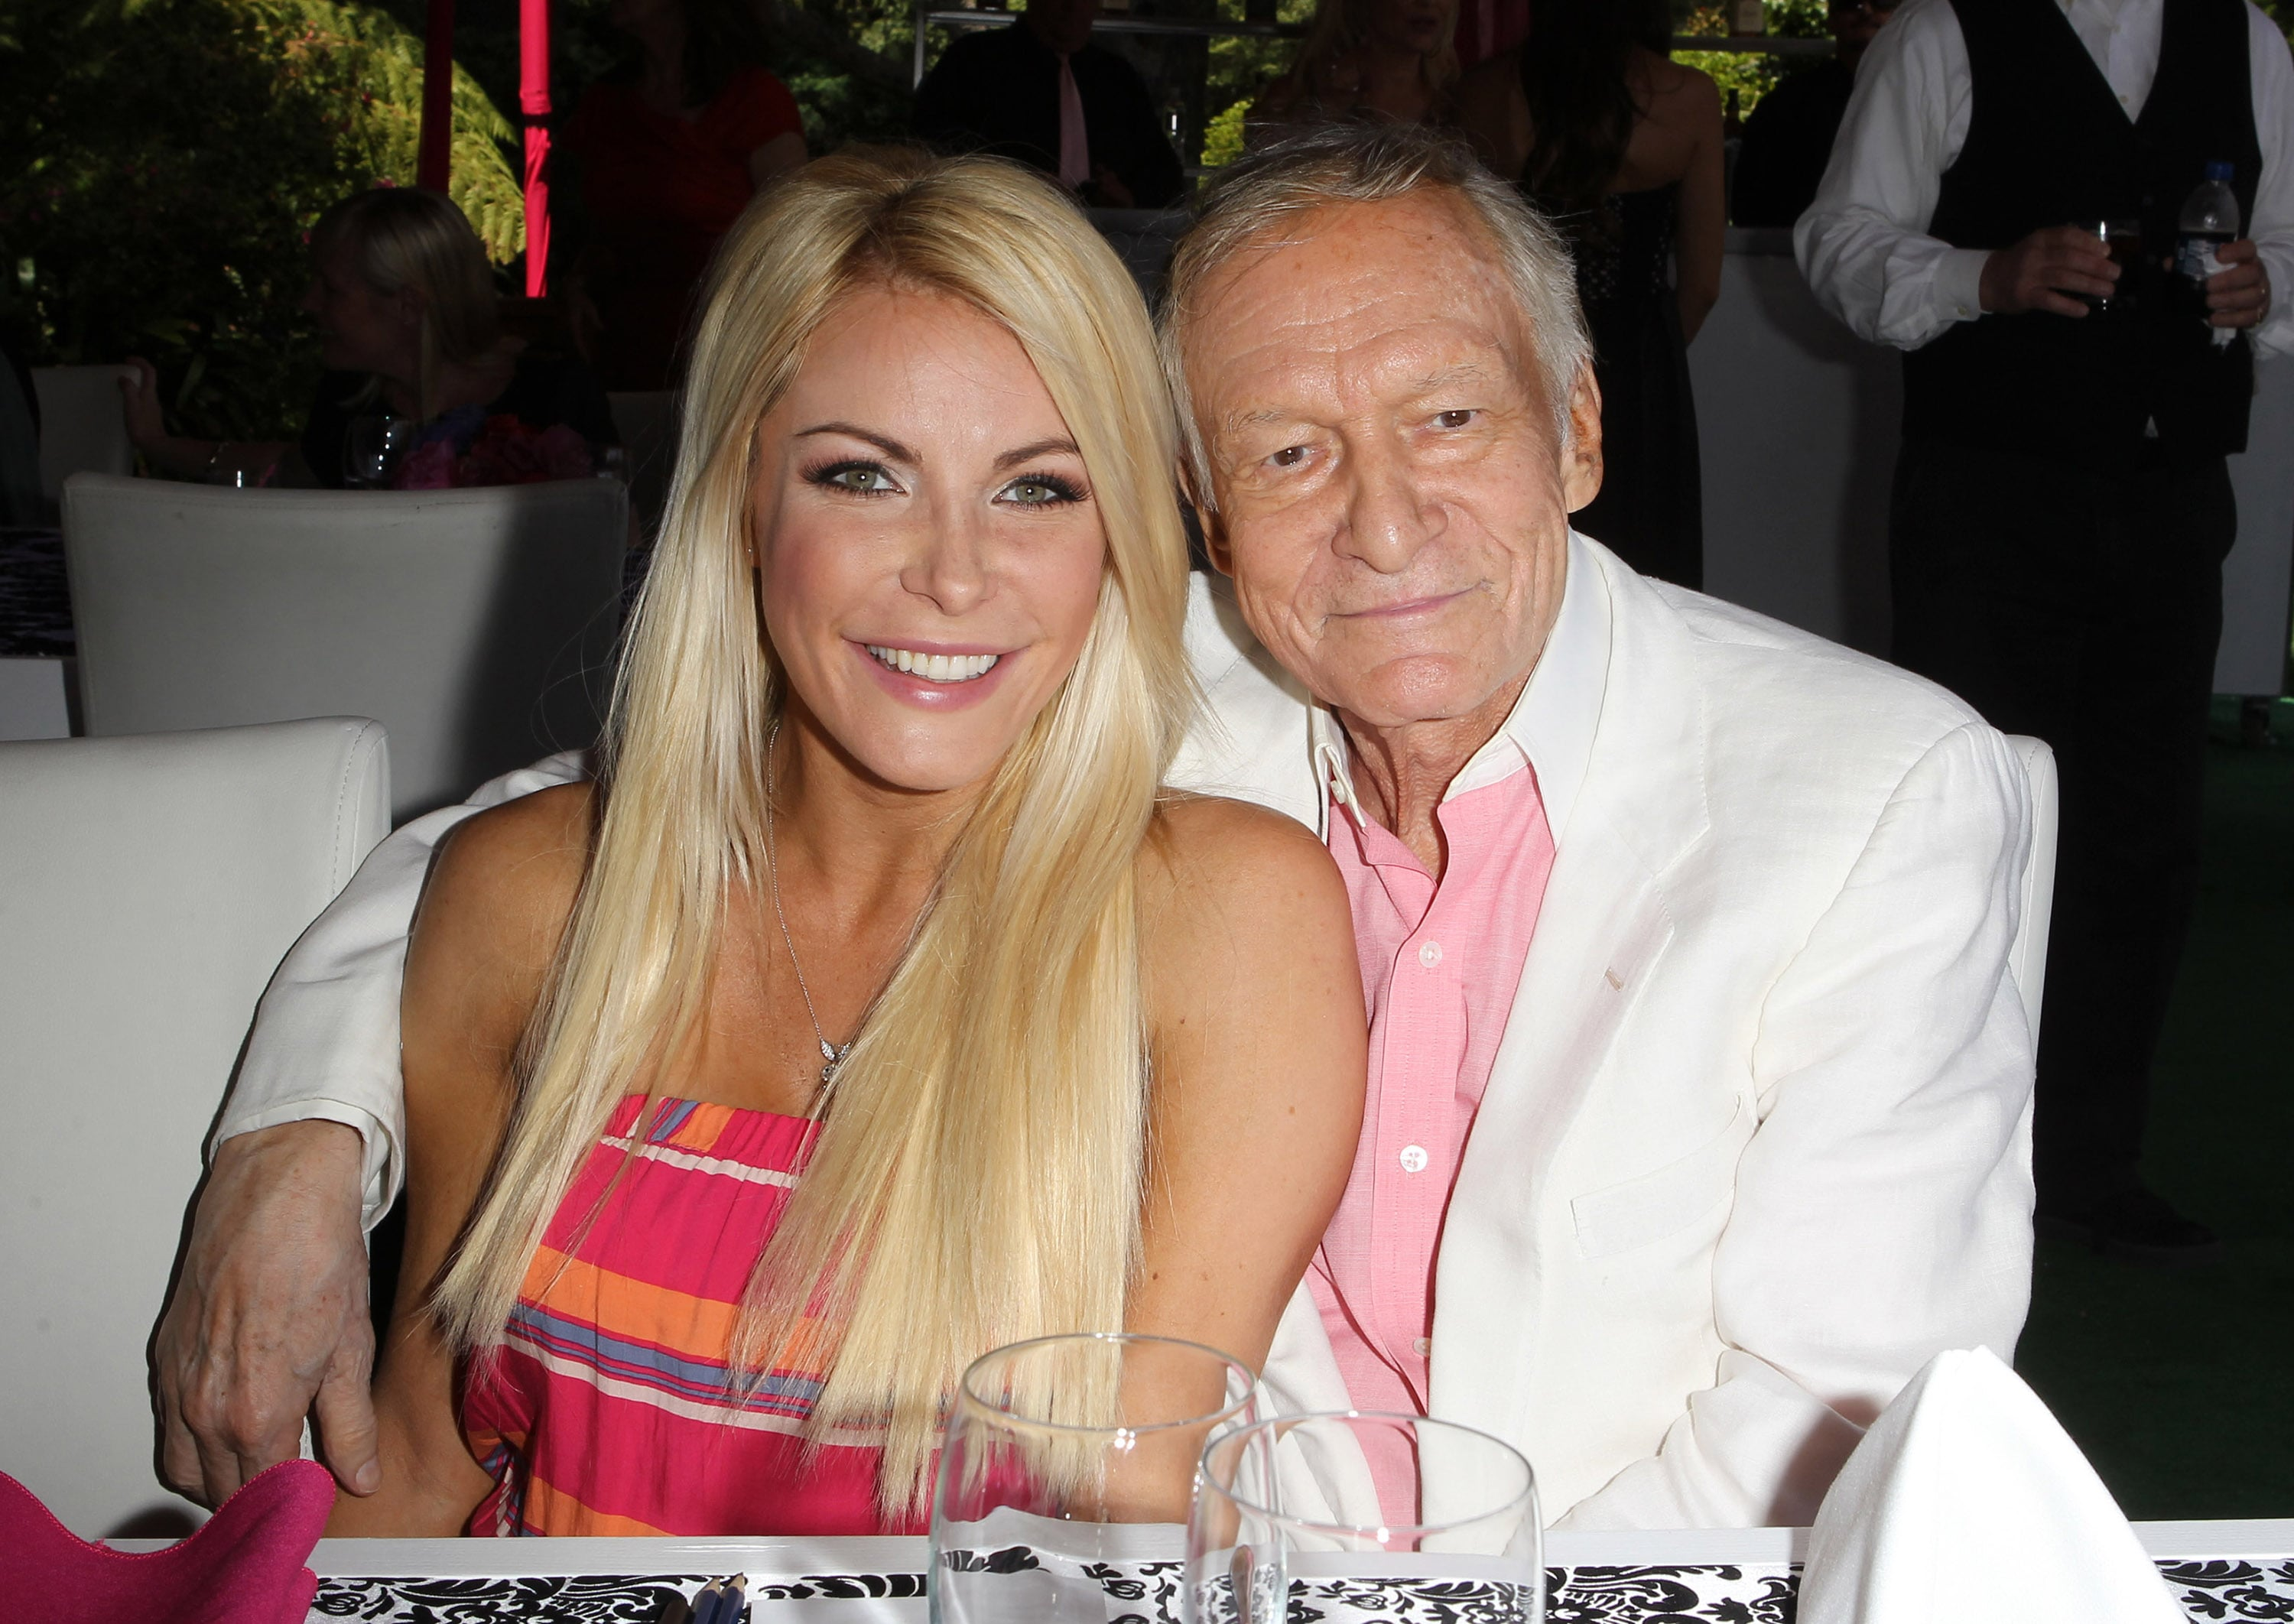 Crystal Hefner opened up for the first time about the Playboy mogul's death. (Photo: WENN)